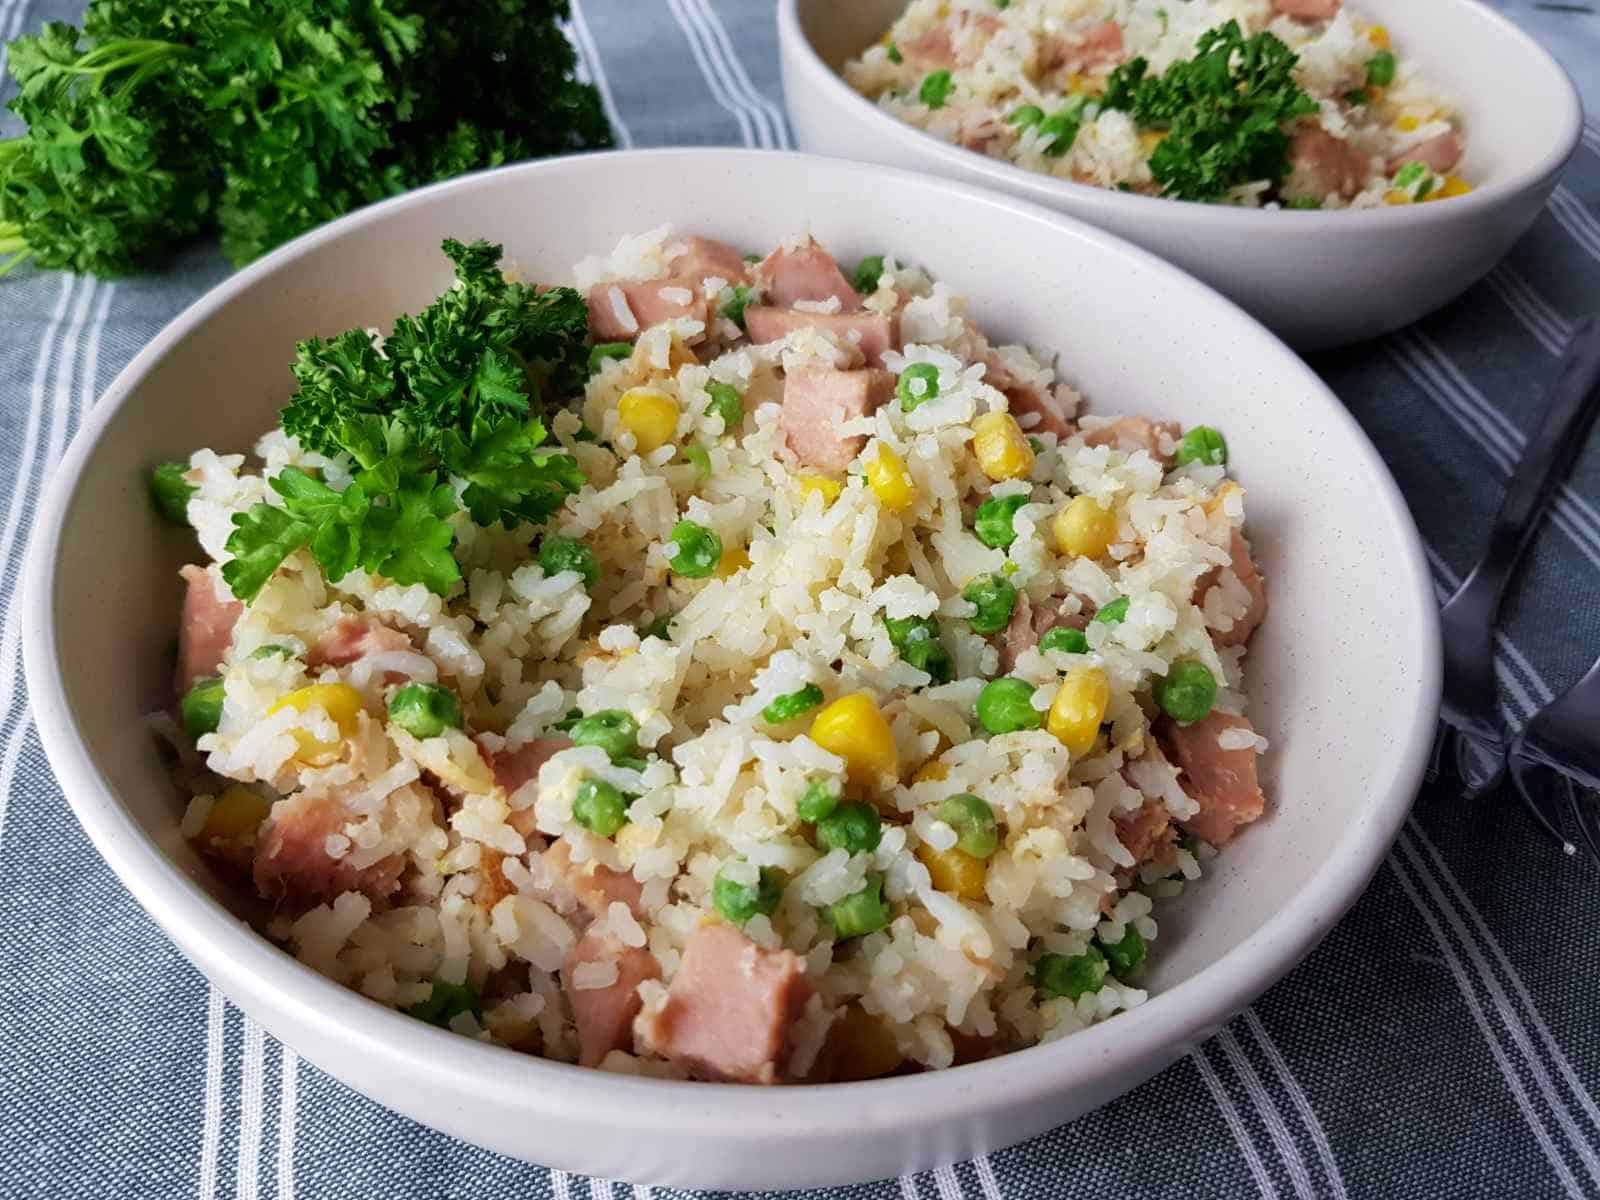 Gammon fried rice in white bowls on a tablecloth with fresh herbs.